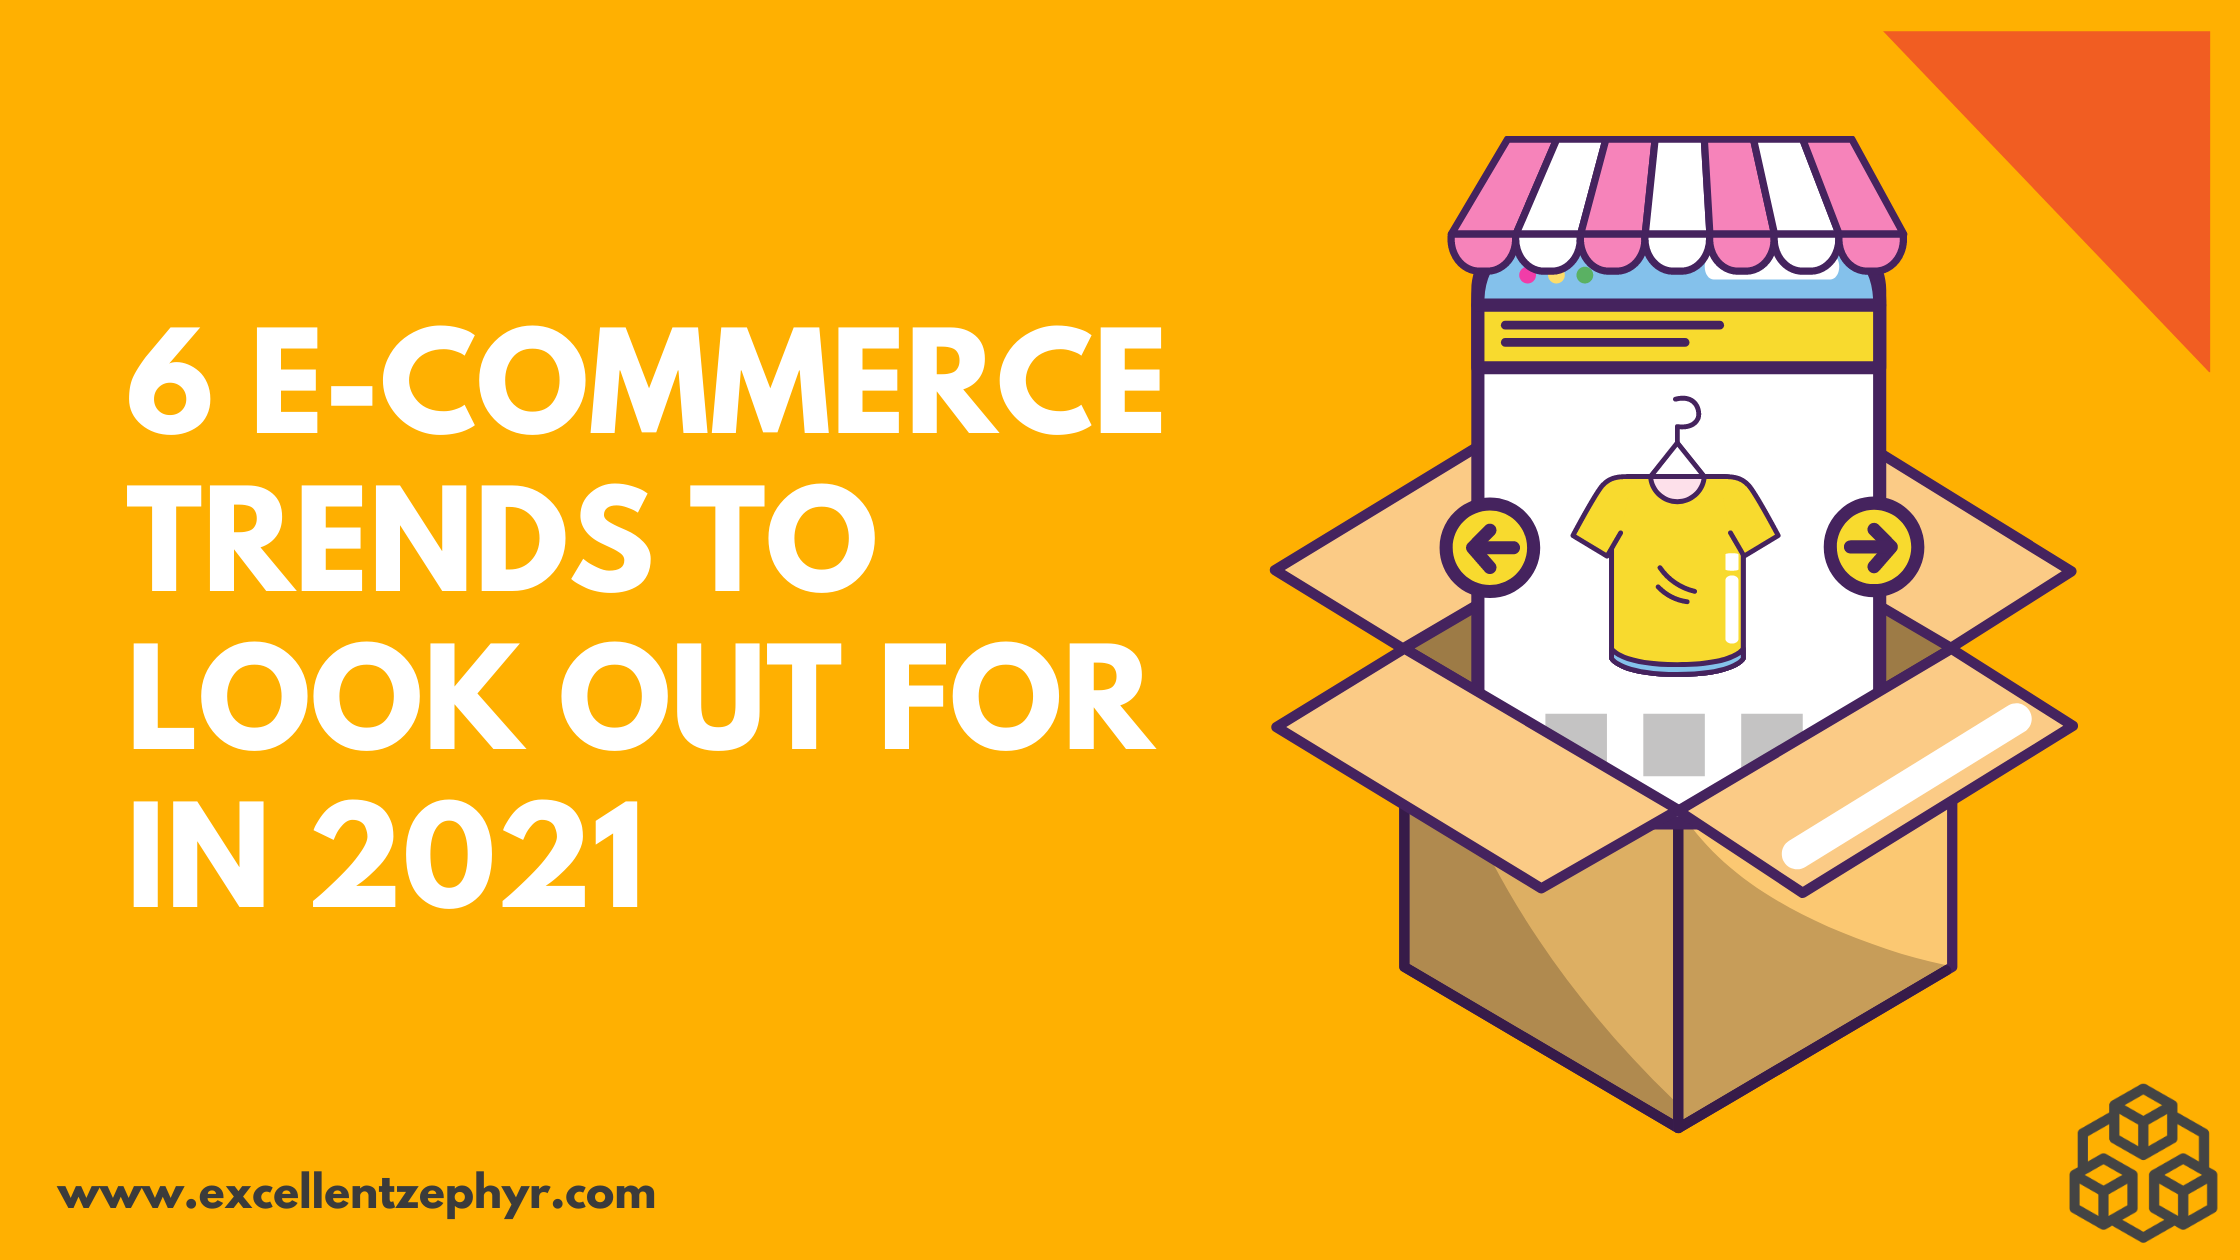 eCommerce 2021: 6 Trends to Watch Out for This Year